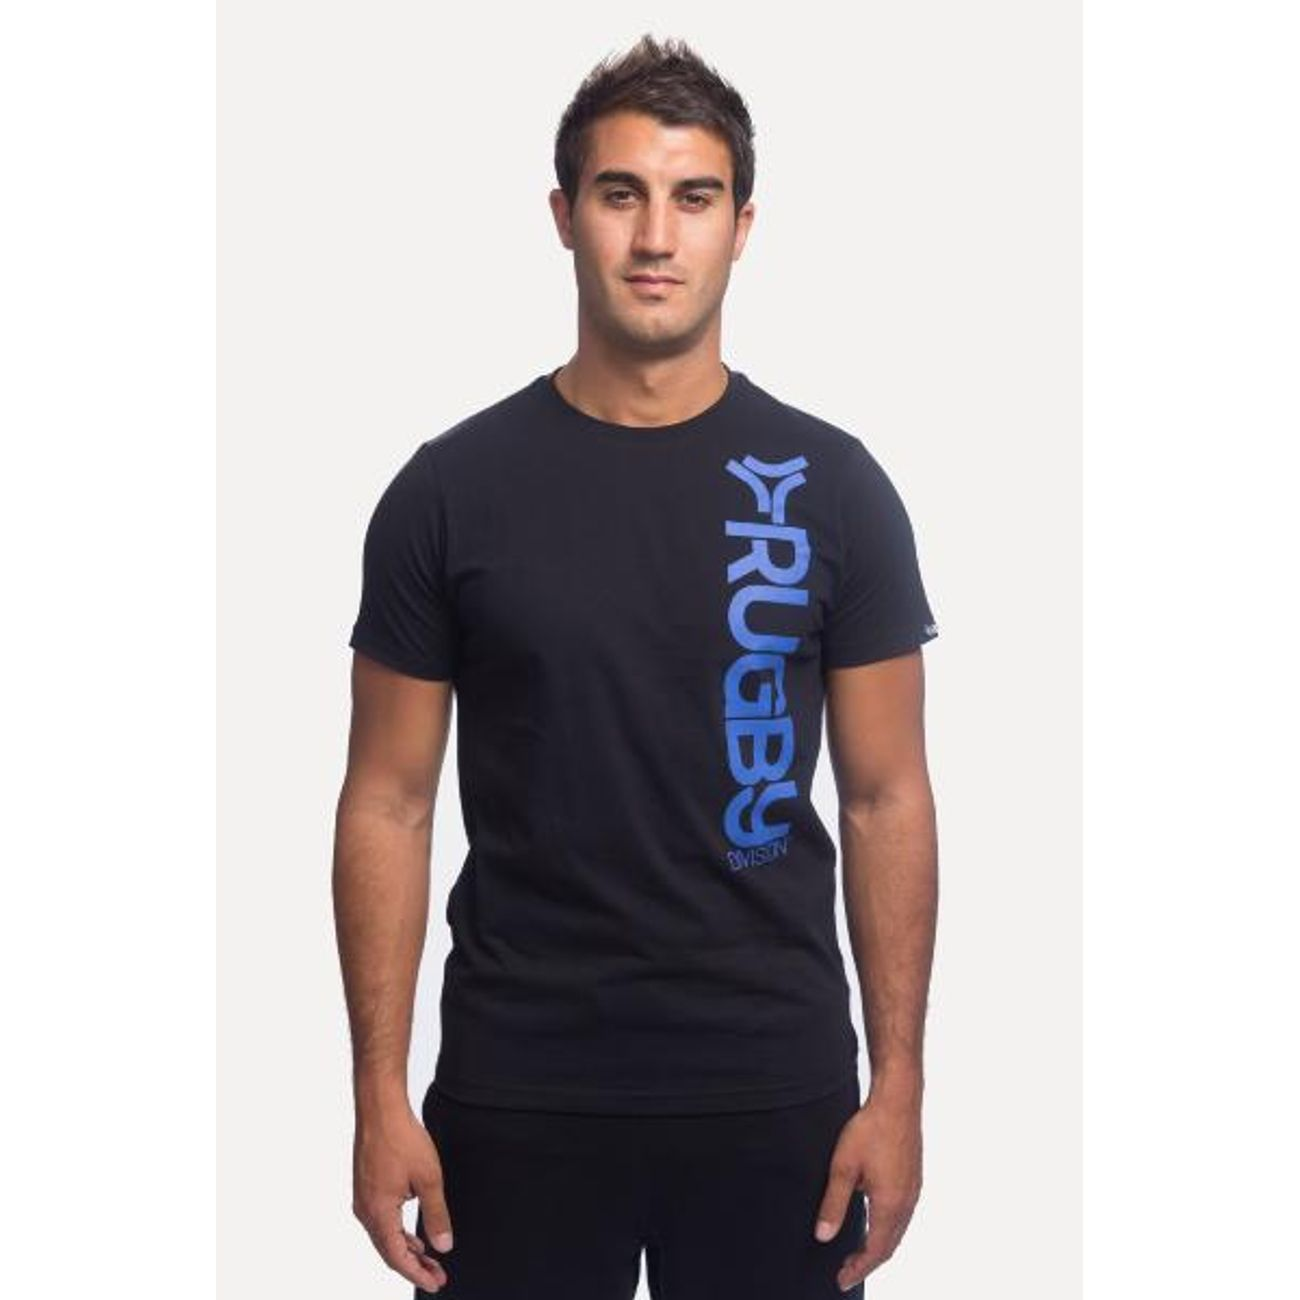 684c035465051 T-SHIRT MODELE VERTICAL - RUGBY DIVISION - taille : 4XL – achat et ...